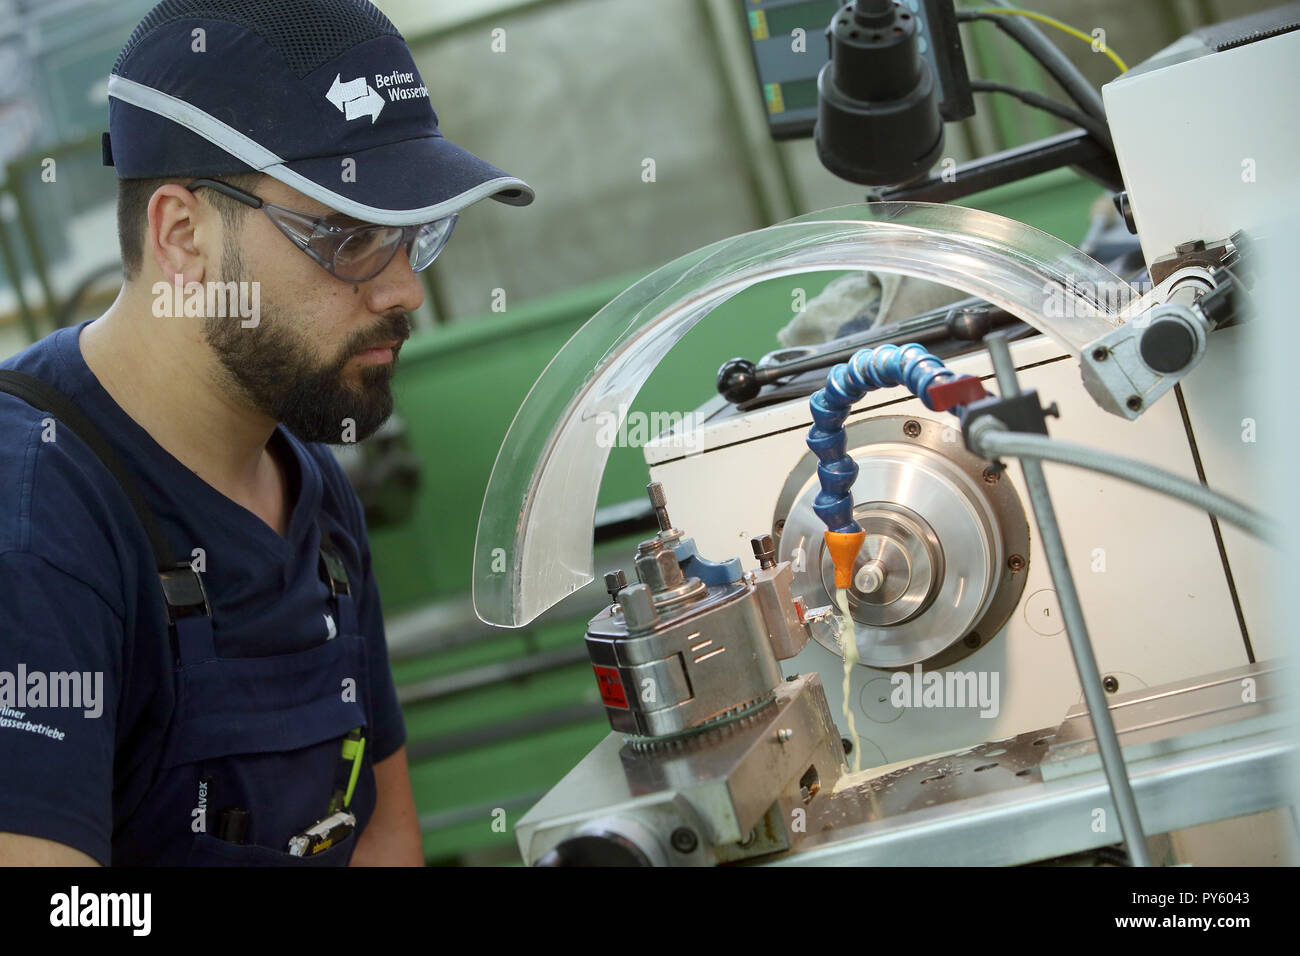 Berlin, Germany. 26th Oct, 2018. At the beginning of a press conference on the 'Training: A Question of Adjustment' campaign at the Berliner Wasserwerke training facility, a trainee makes a workpiece on a lathe. The campaign aims to recruit more trainees with a migration history. Credit: Wolfgang Kumm/dpa/Alamy Live News - Stock Image